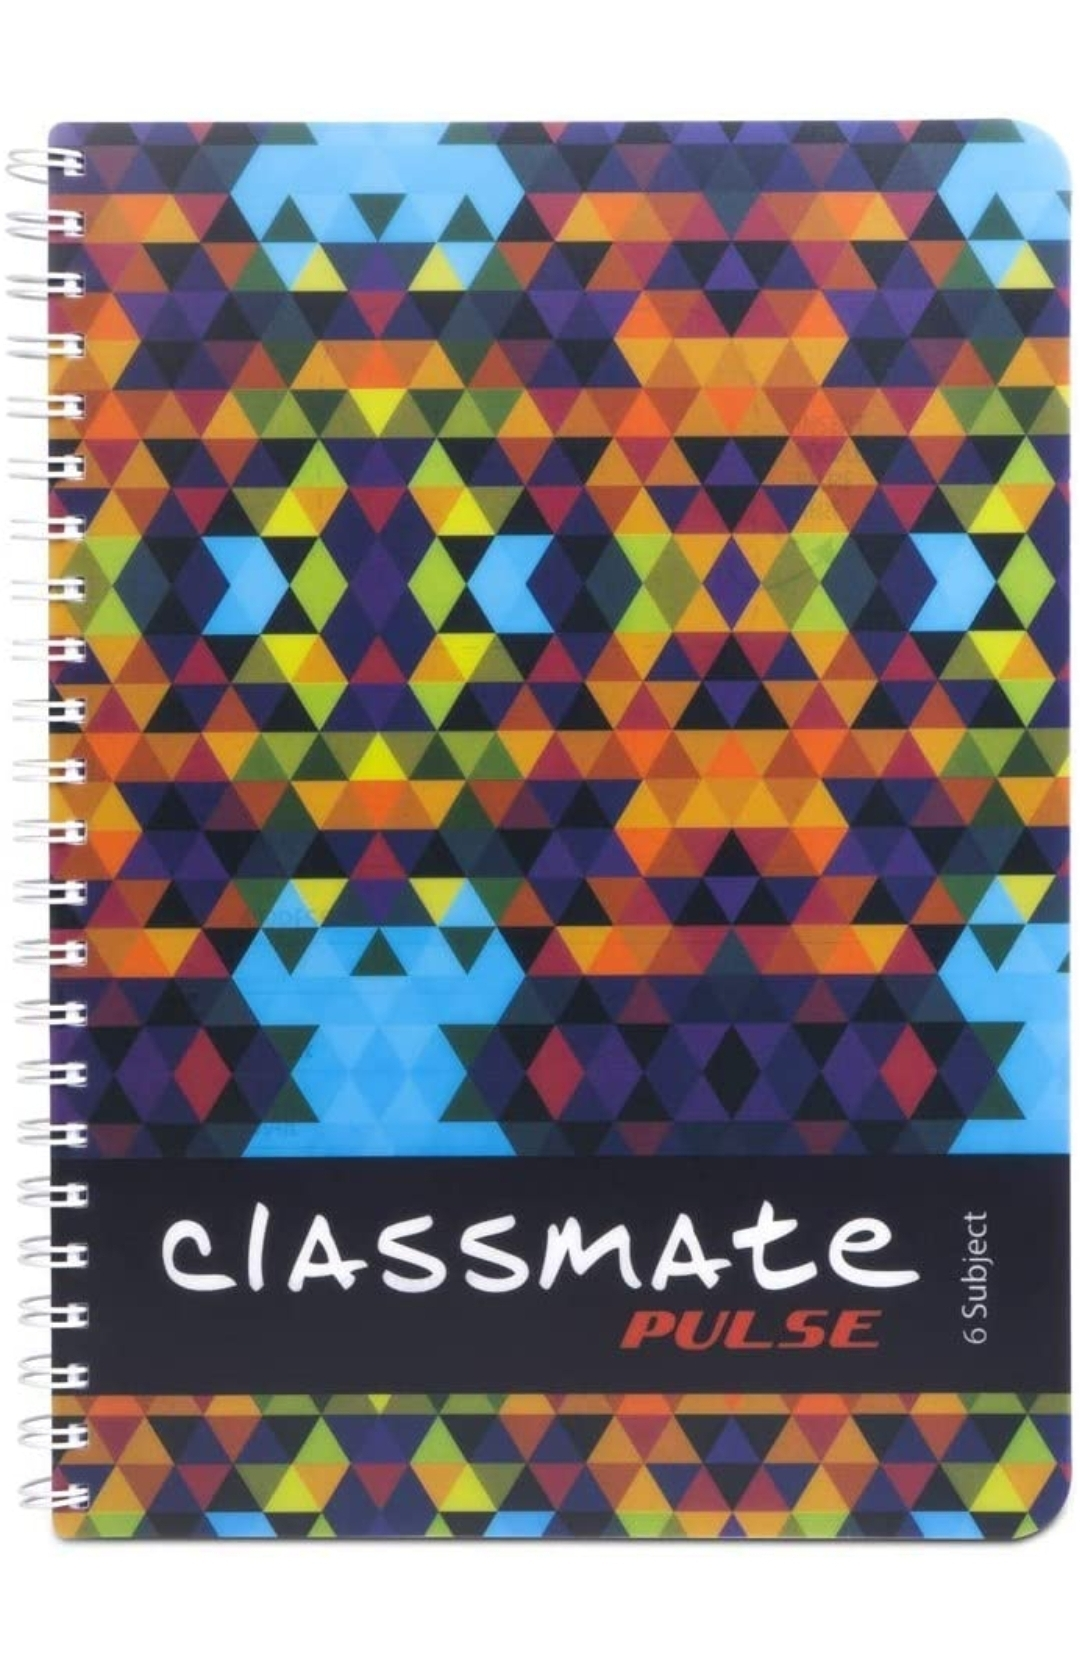 Classmate Pulse Notebook Soft Cover 6 Subject Spiral Binding Notebook Unruled 29.7 X 21 cm 300 Pages Pack of 1